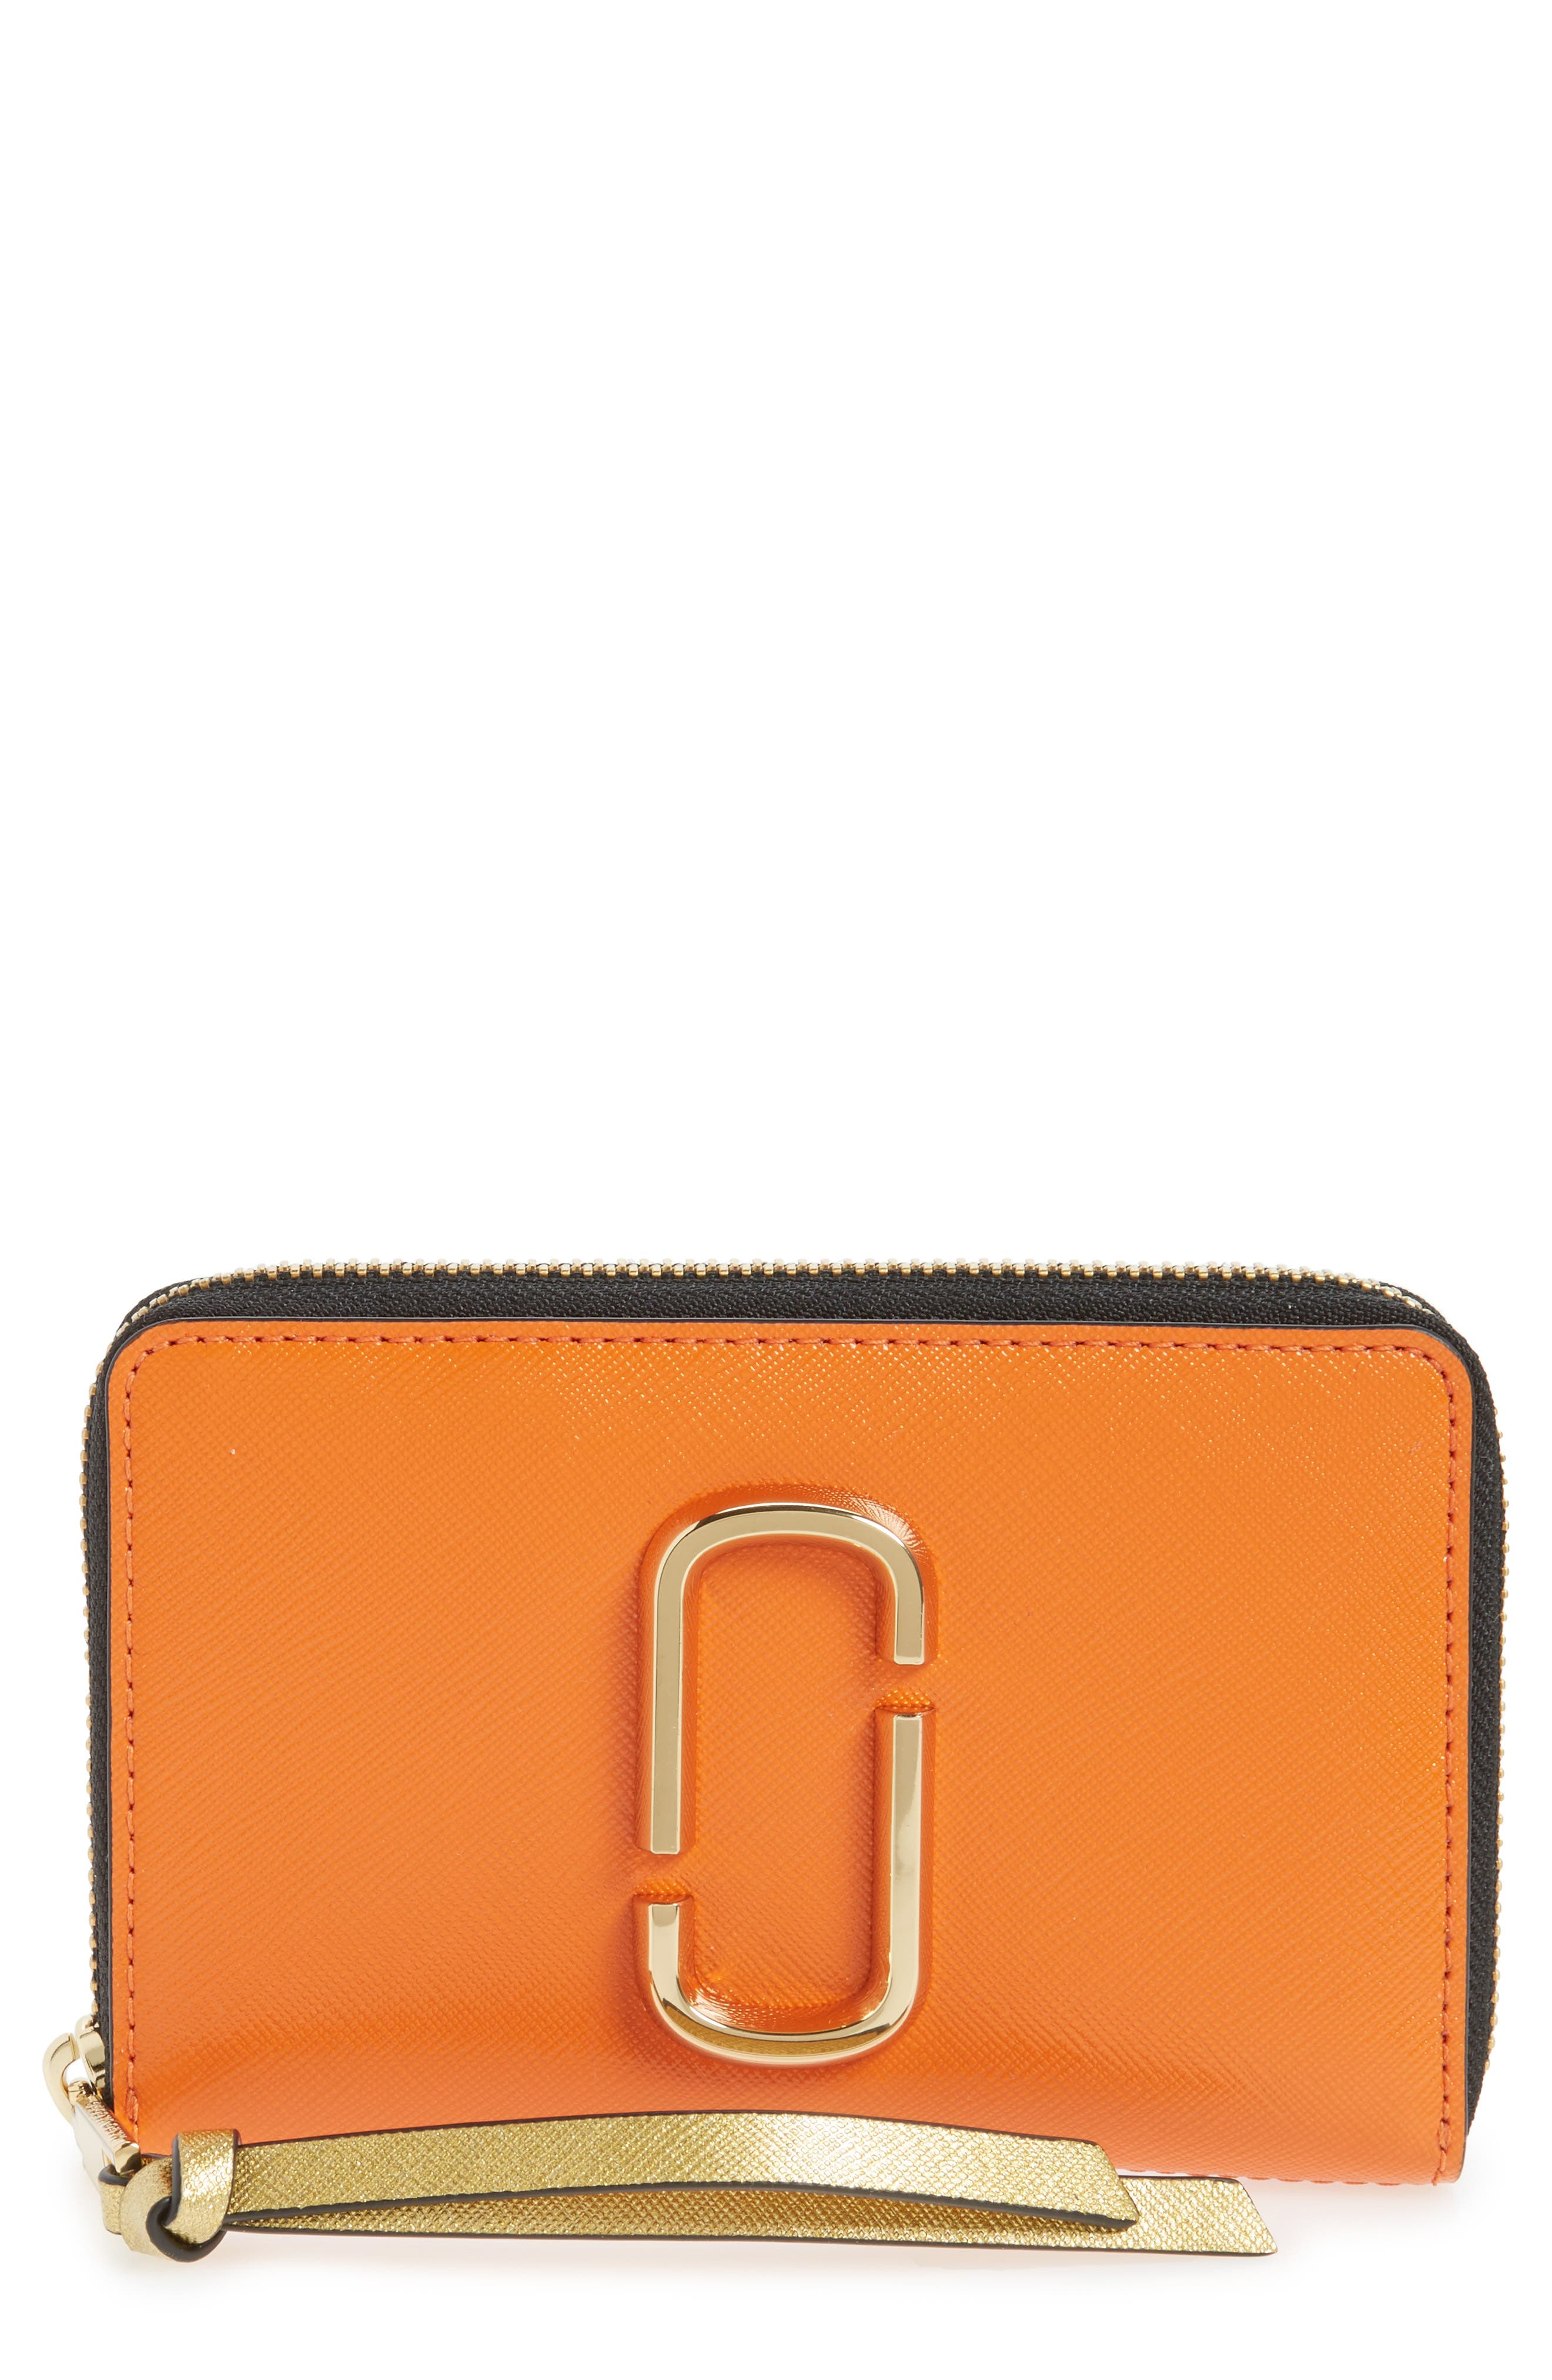 Alternate Image 1 Selected - MARC JACOBS Small Snapshot Leather Zip-Around Wallet